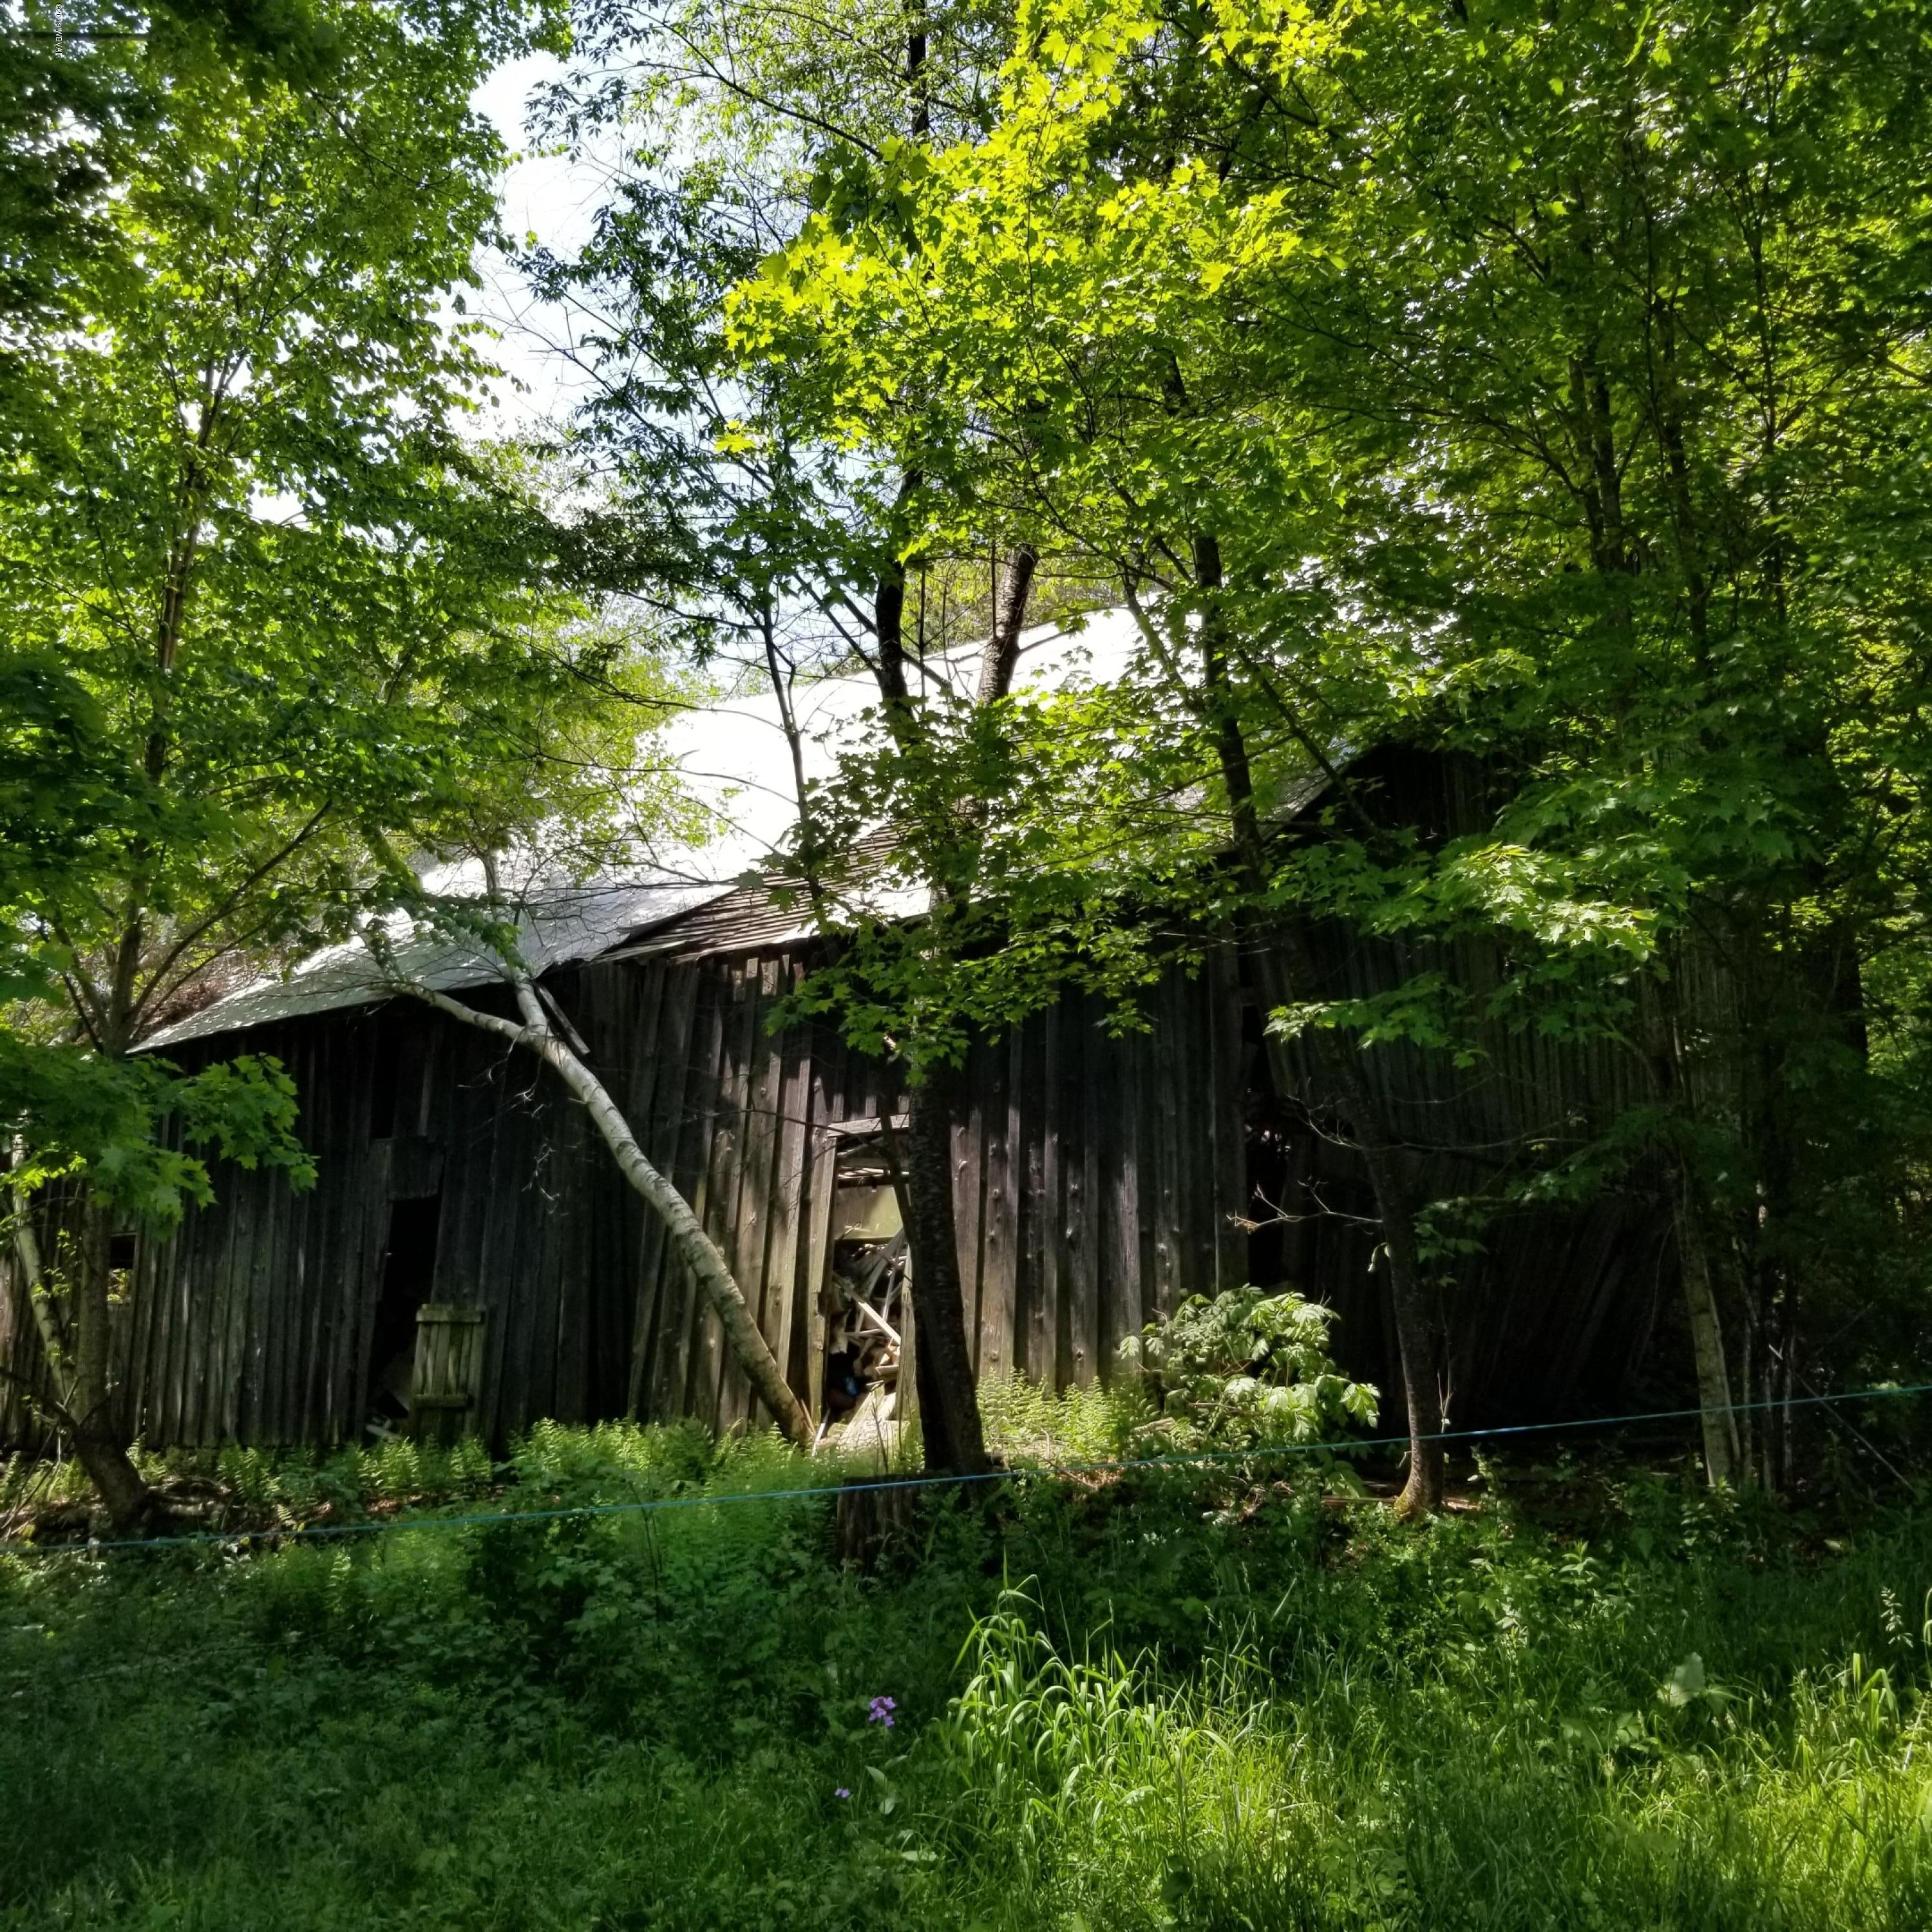 549 MILLVIEW MOUNTAIN ROAD,Forksville,PA 18616,Land,MILLVIEW MOUNTAIN,WB-88759